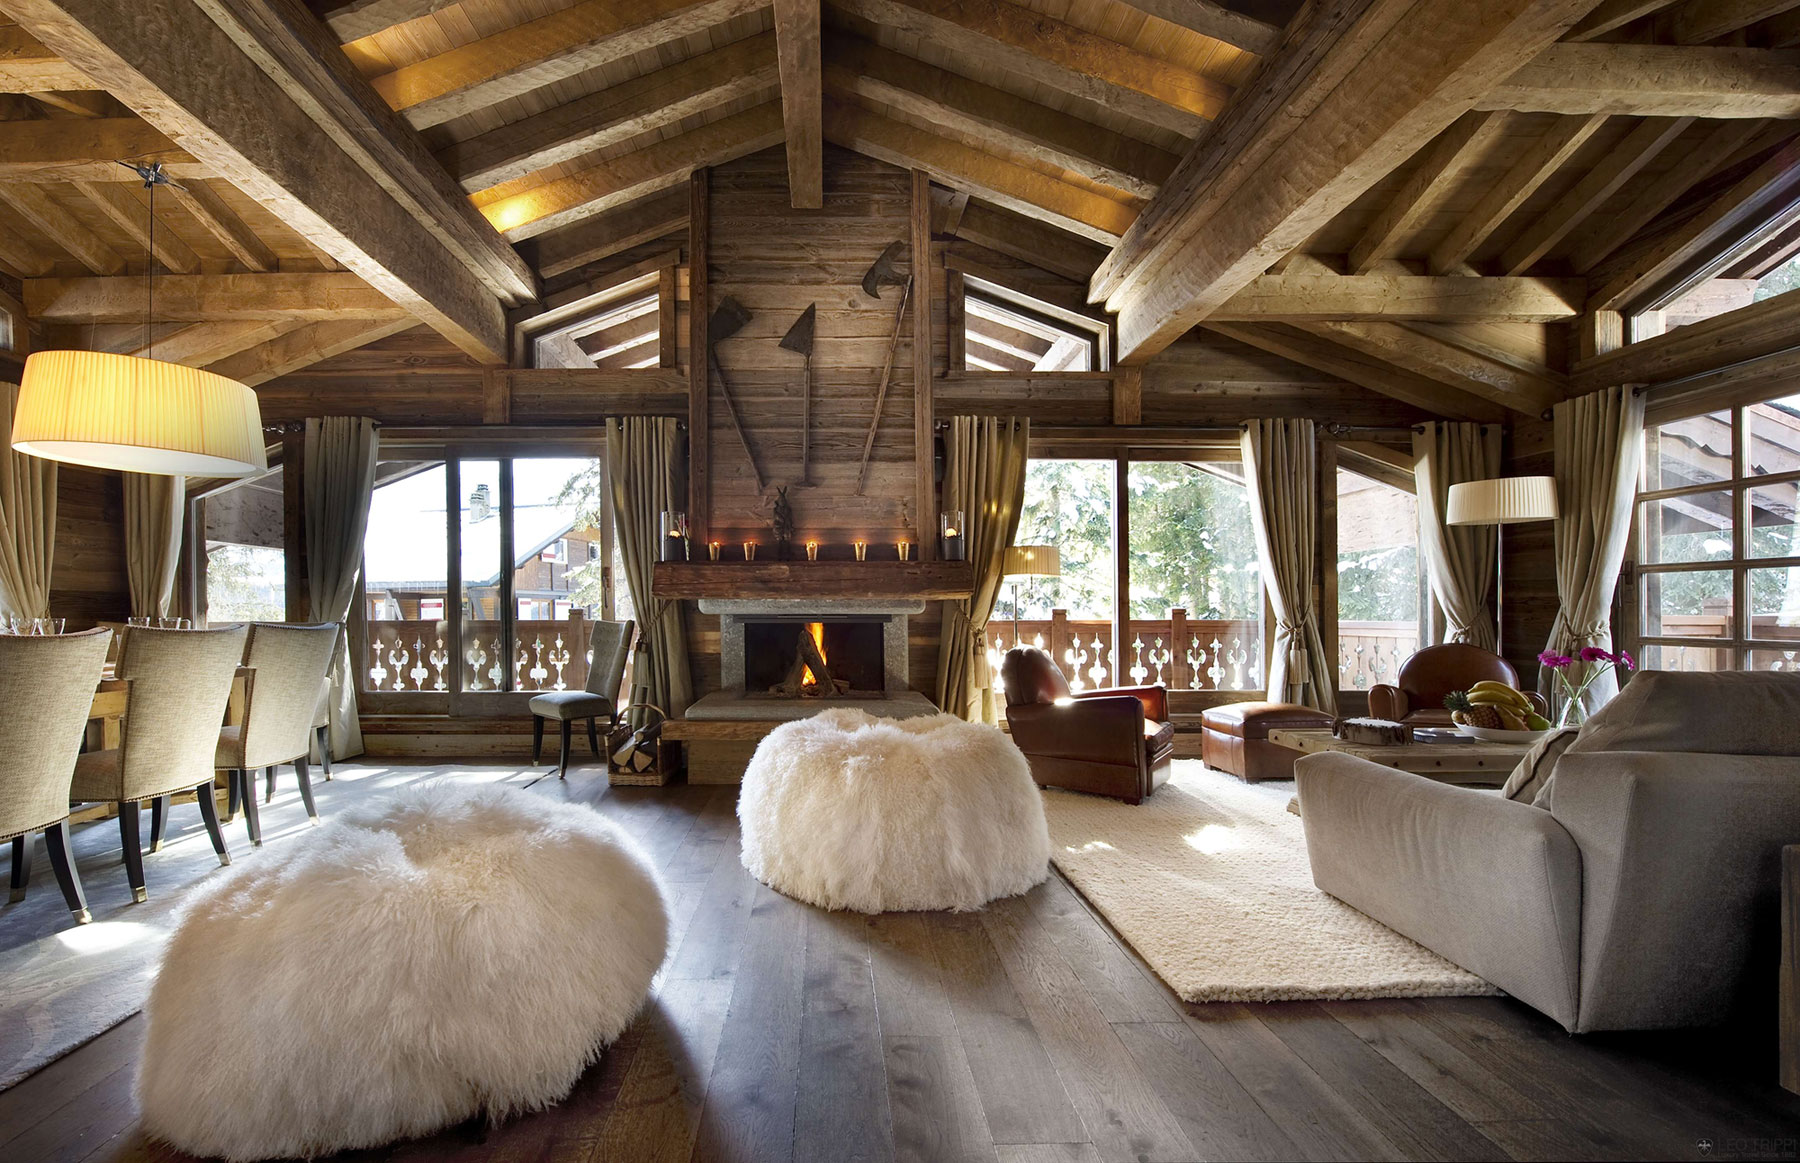 Deckengestaltung Loft The Chalet Les Gentianes 1850 In Courchevel The French Alps